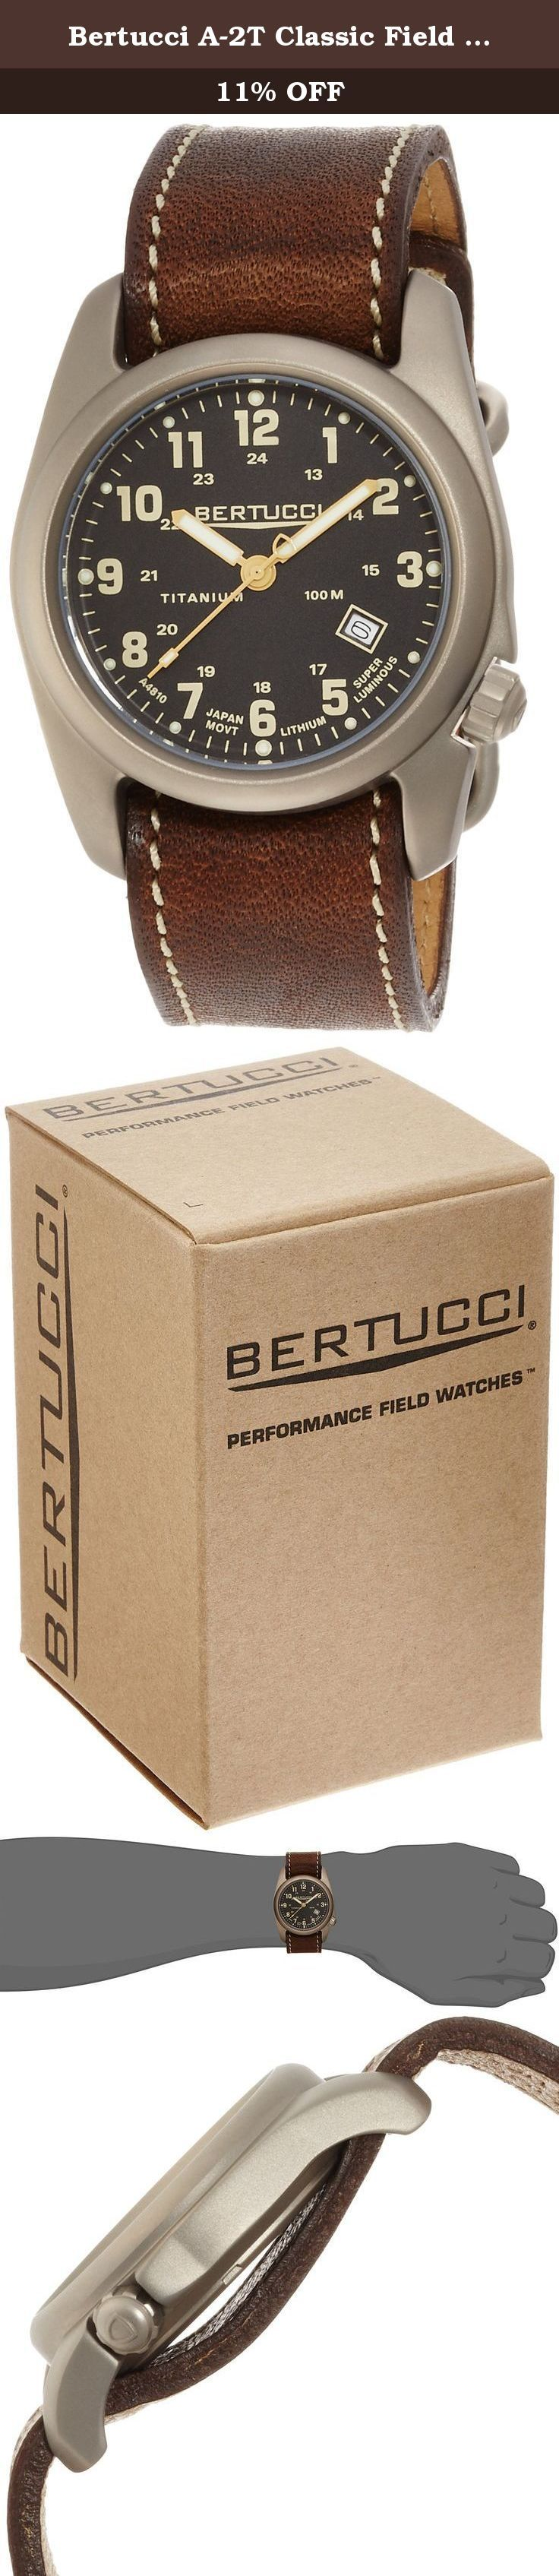 Bertucci A-2T Classic Field Watch Black/Ti-Horween Brown Band 12712. The solid titanium A-2T Original Classics strike the right balance between tradition and innovation. The rugged U.S. patented 40 mm case design is manufactured from solid titanium. a high performance alloy we believe to be the best material for a watch case. The A-2T Original Classics feature a clean classic dial that is easy to read. A watch that is ready for the rigors of the day.